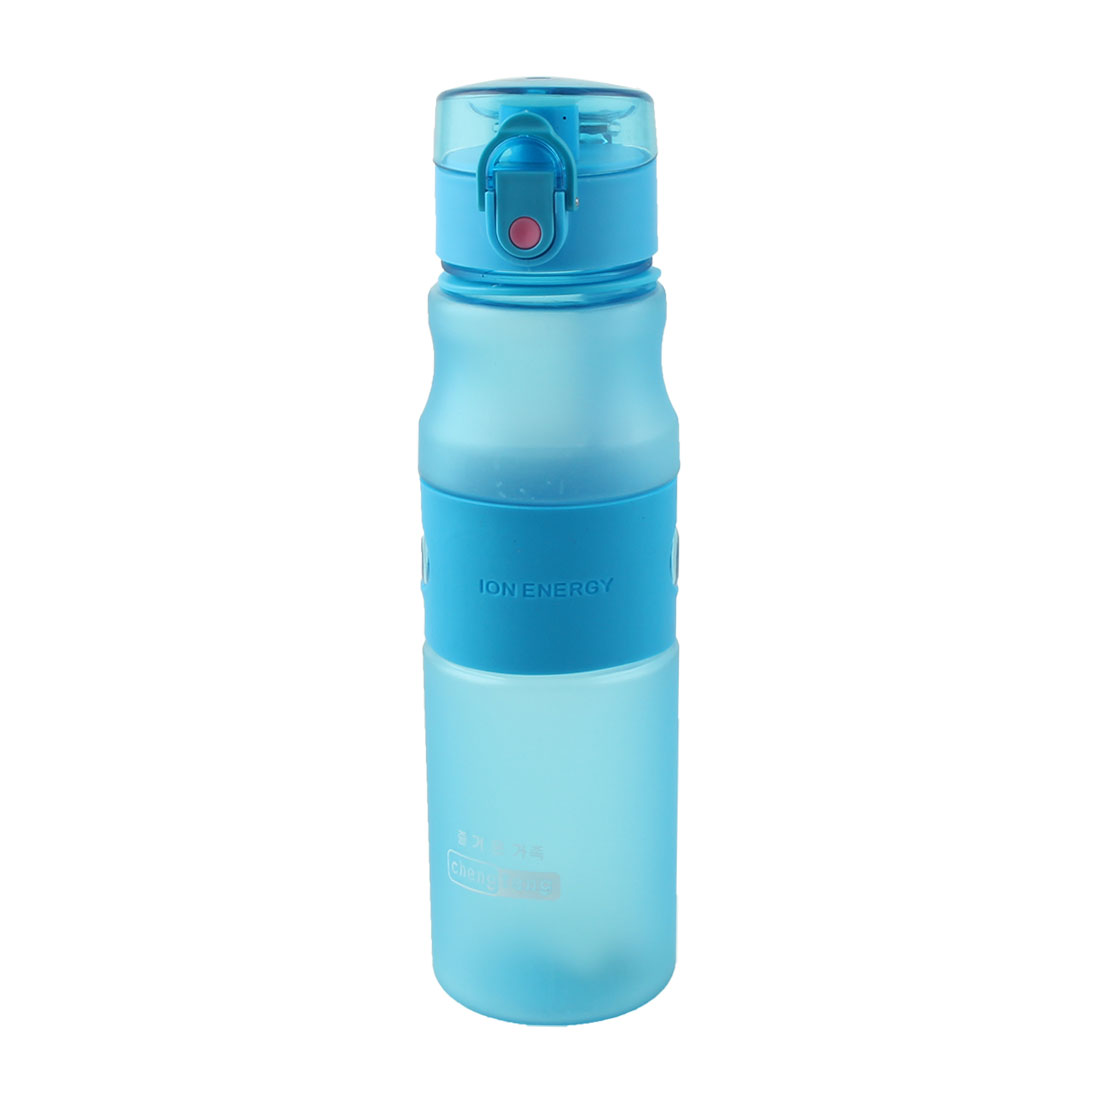 Plastic Portable Frosted Tea Cup Sport Drinking Water Bottle Mug Camping Kettle Blue 700ml